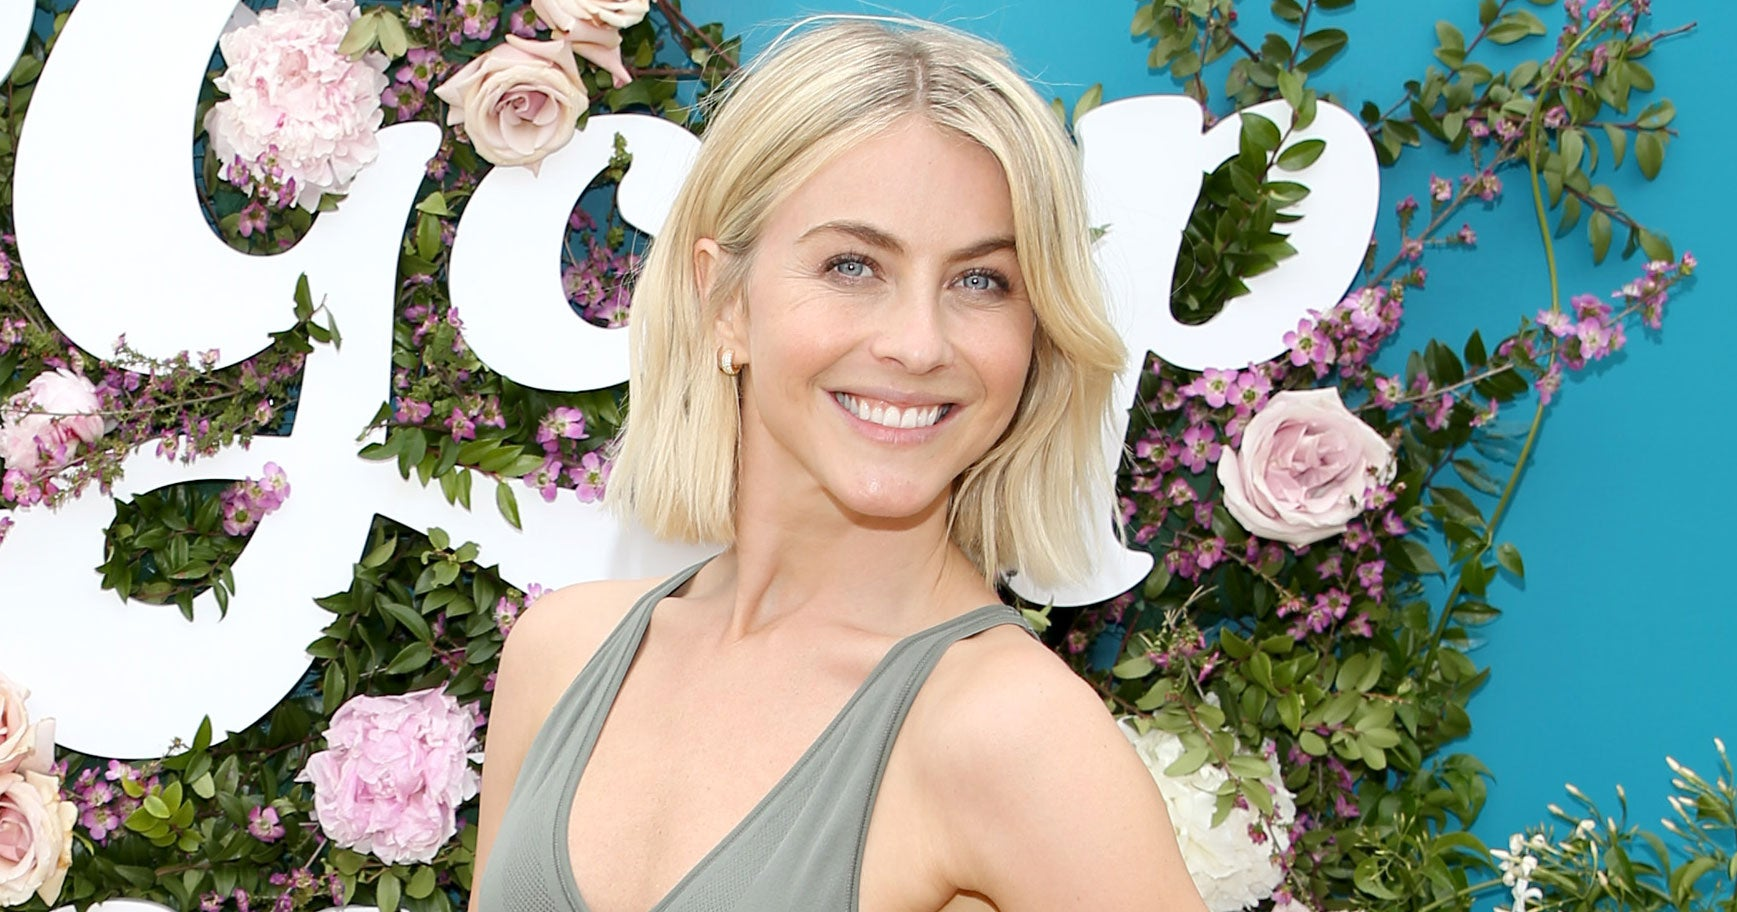 Why Julianne Hough Loves Energy Healing, According To The Goop Lab